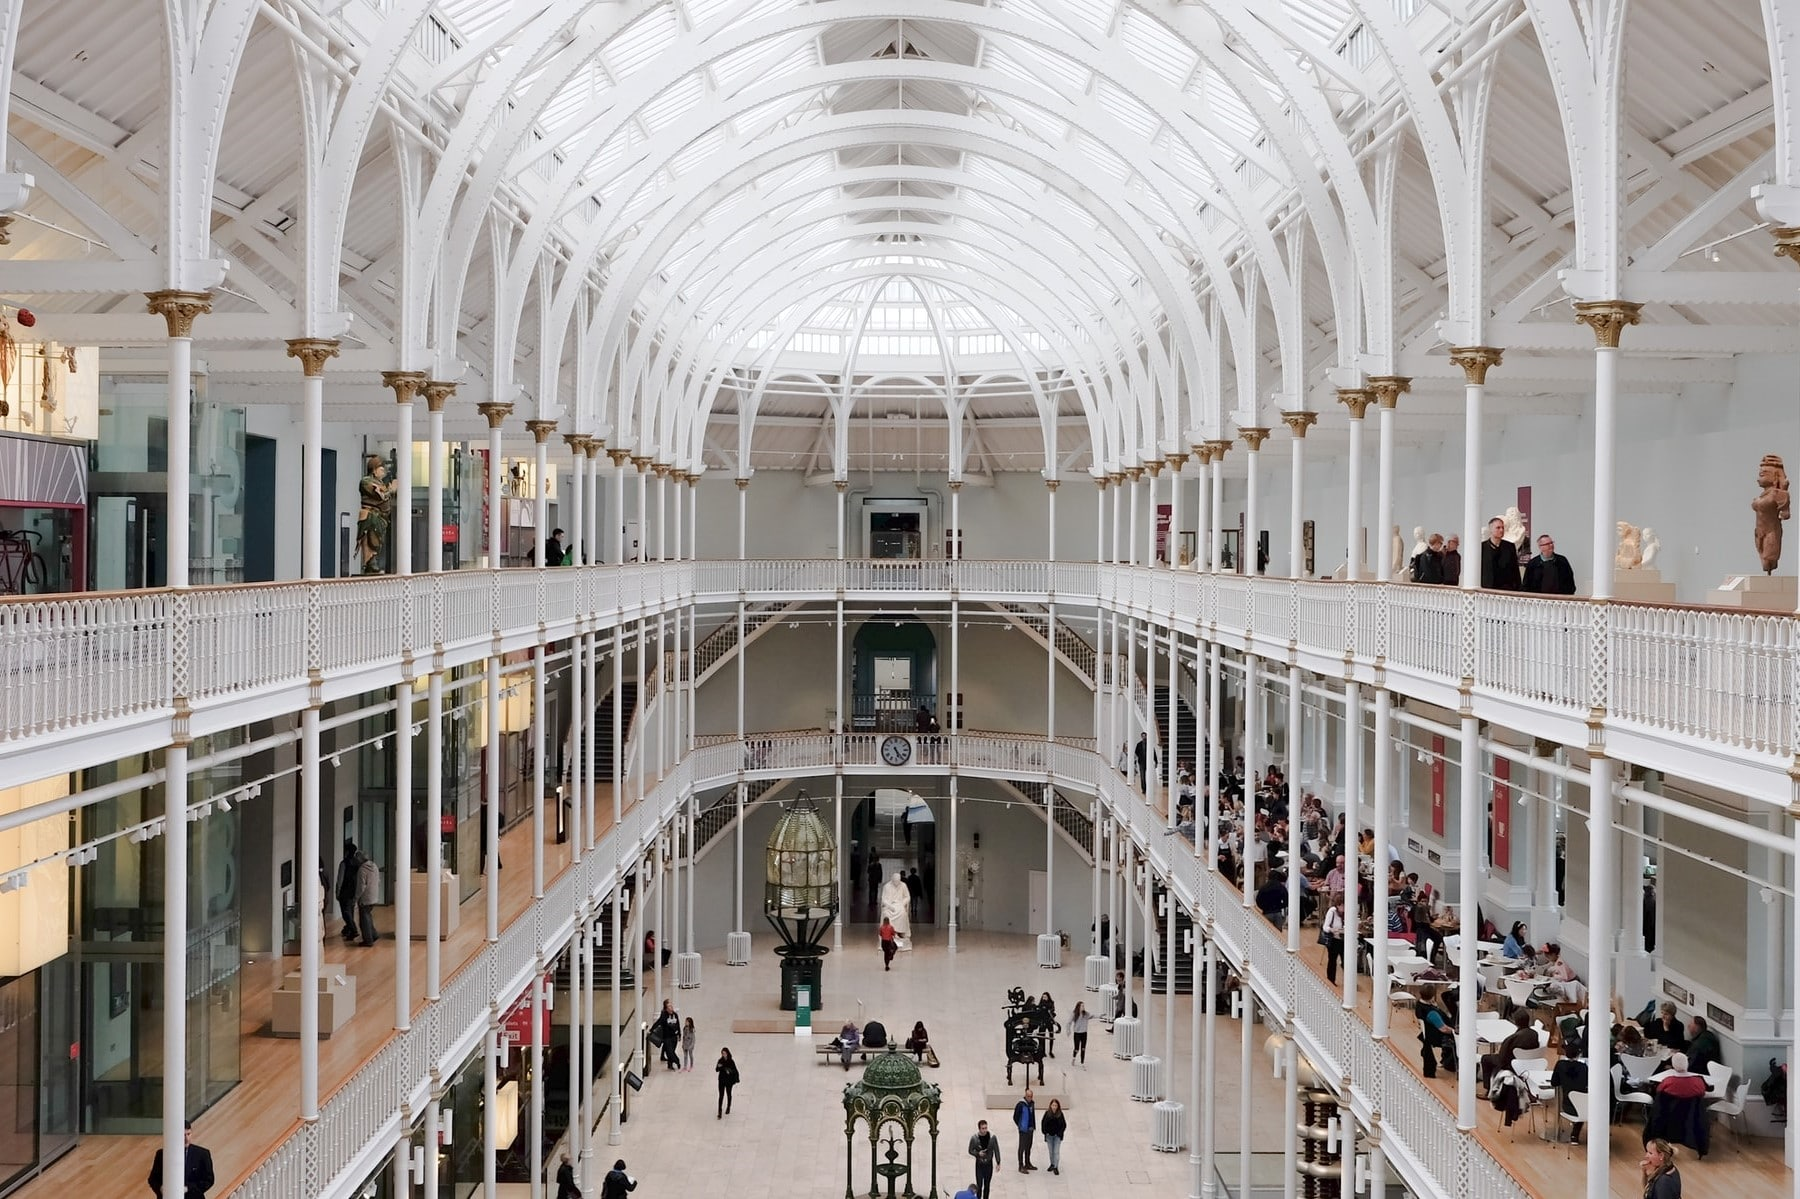 people-walking-around-white-domed-museum-national-museum-of-scotland